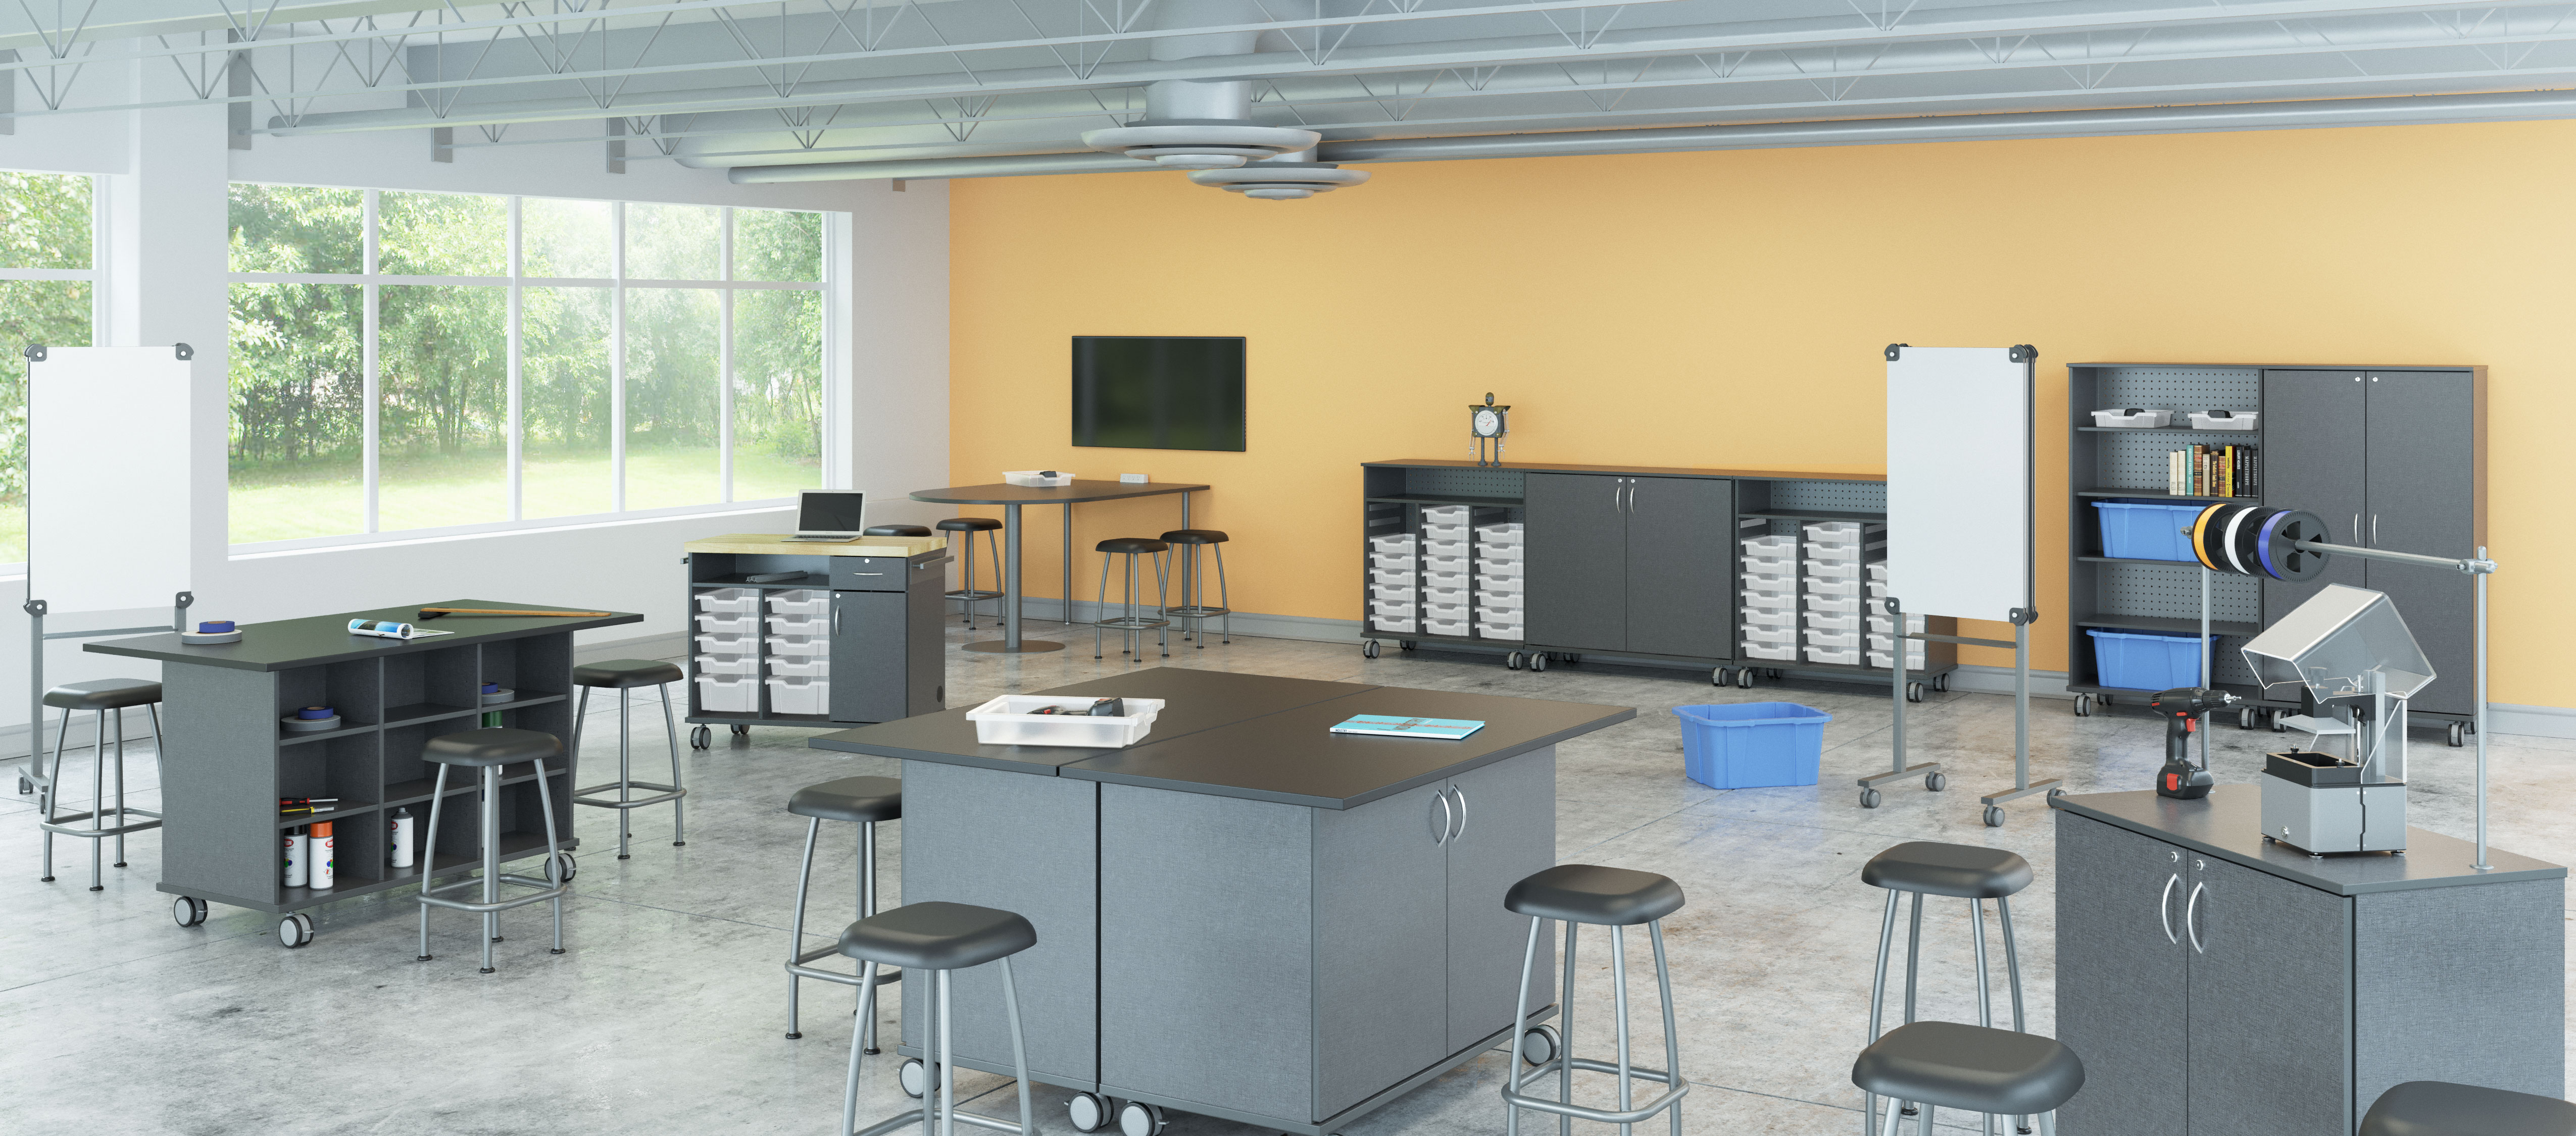 Rendering of Makerspace|STEM|CTE collection